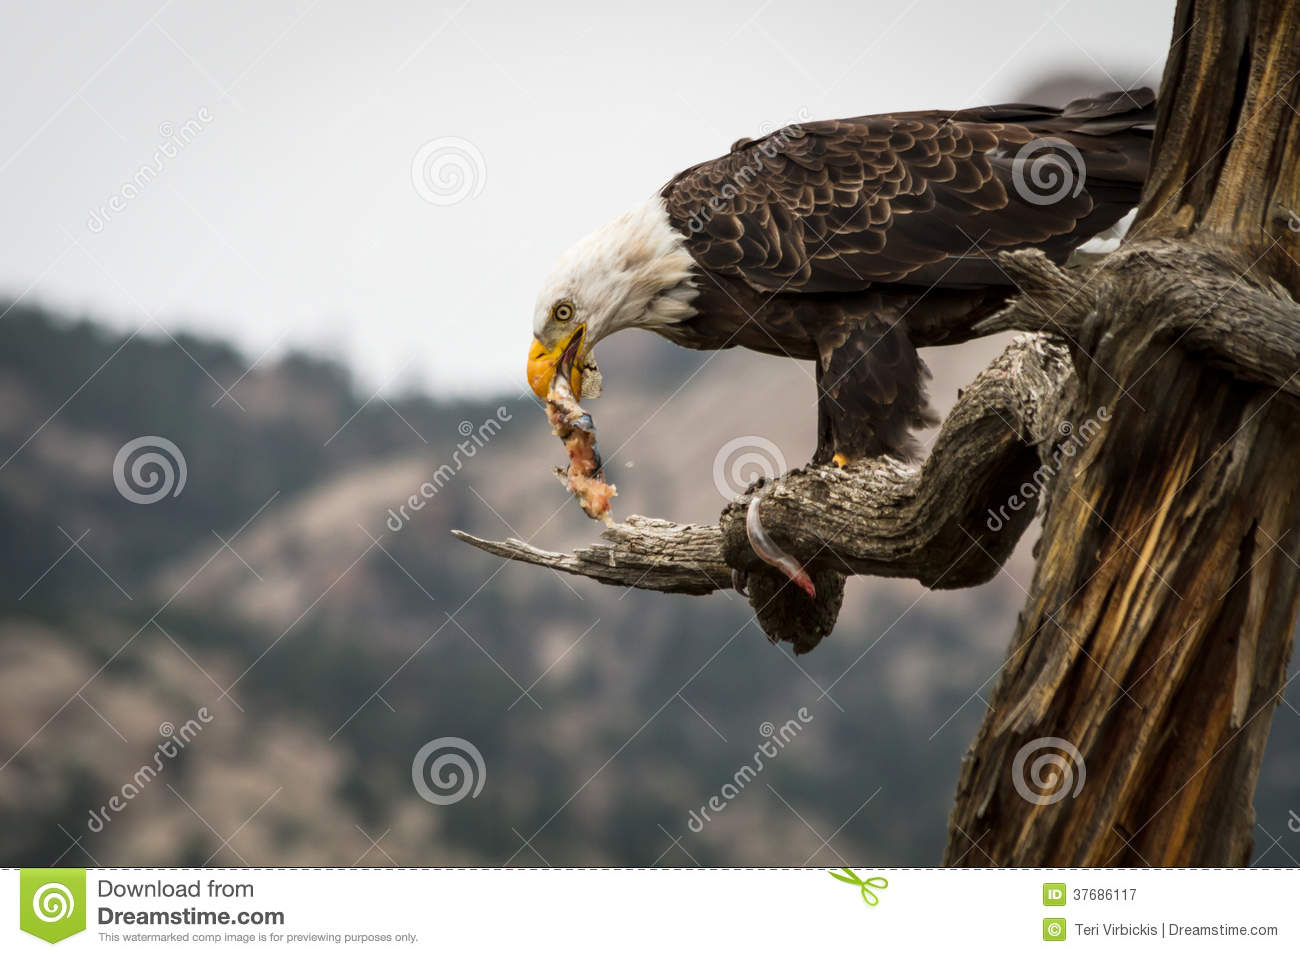 Eagle eating fish stock image image of eating american for Dreaming of eating fish